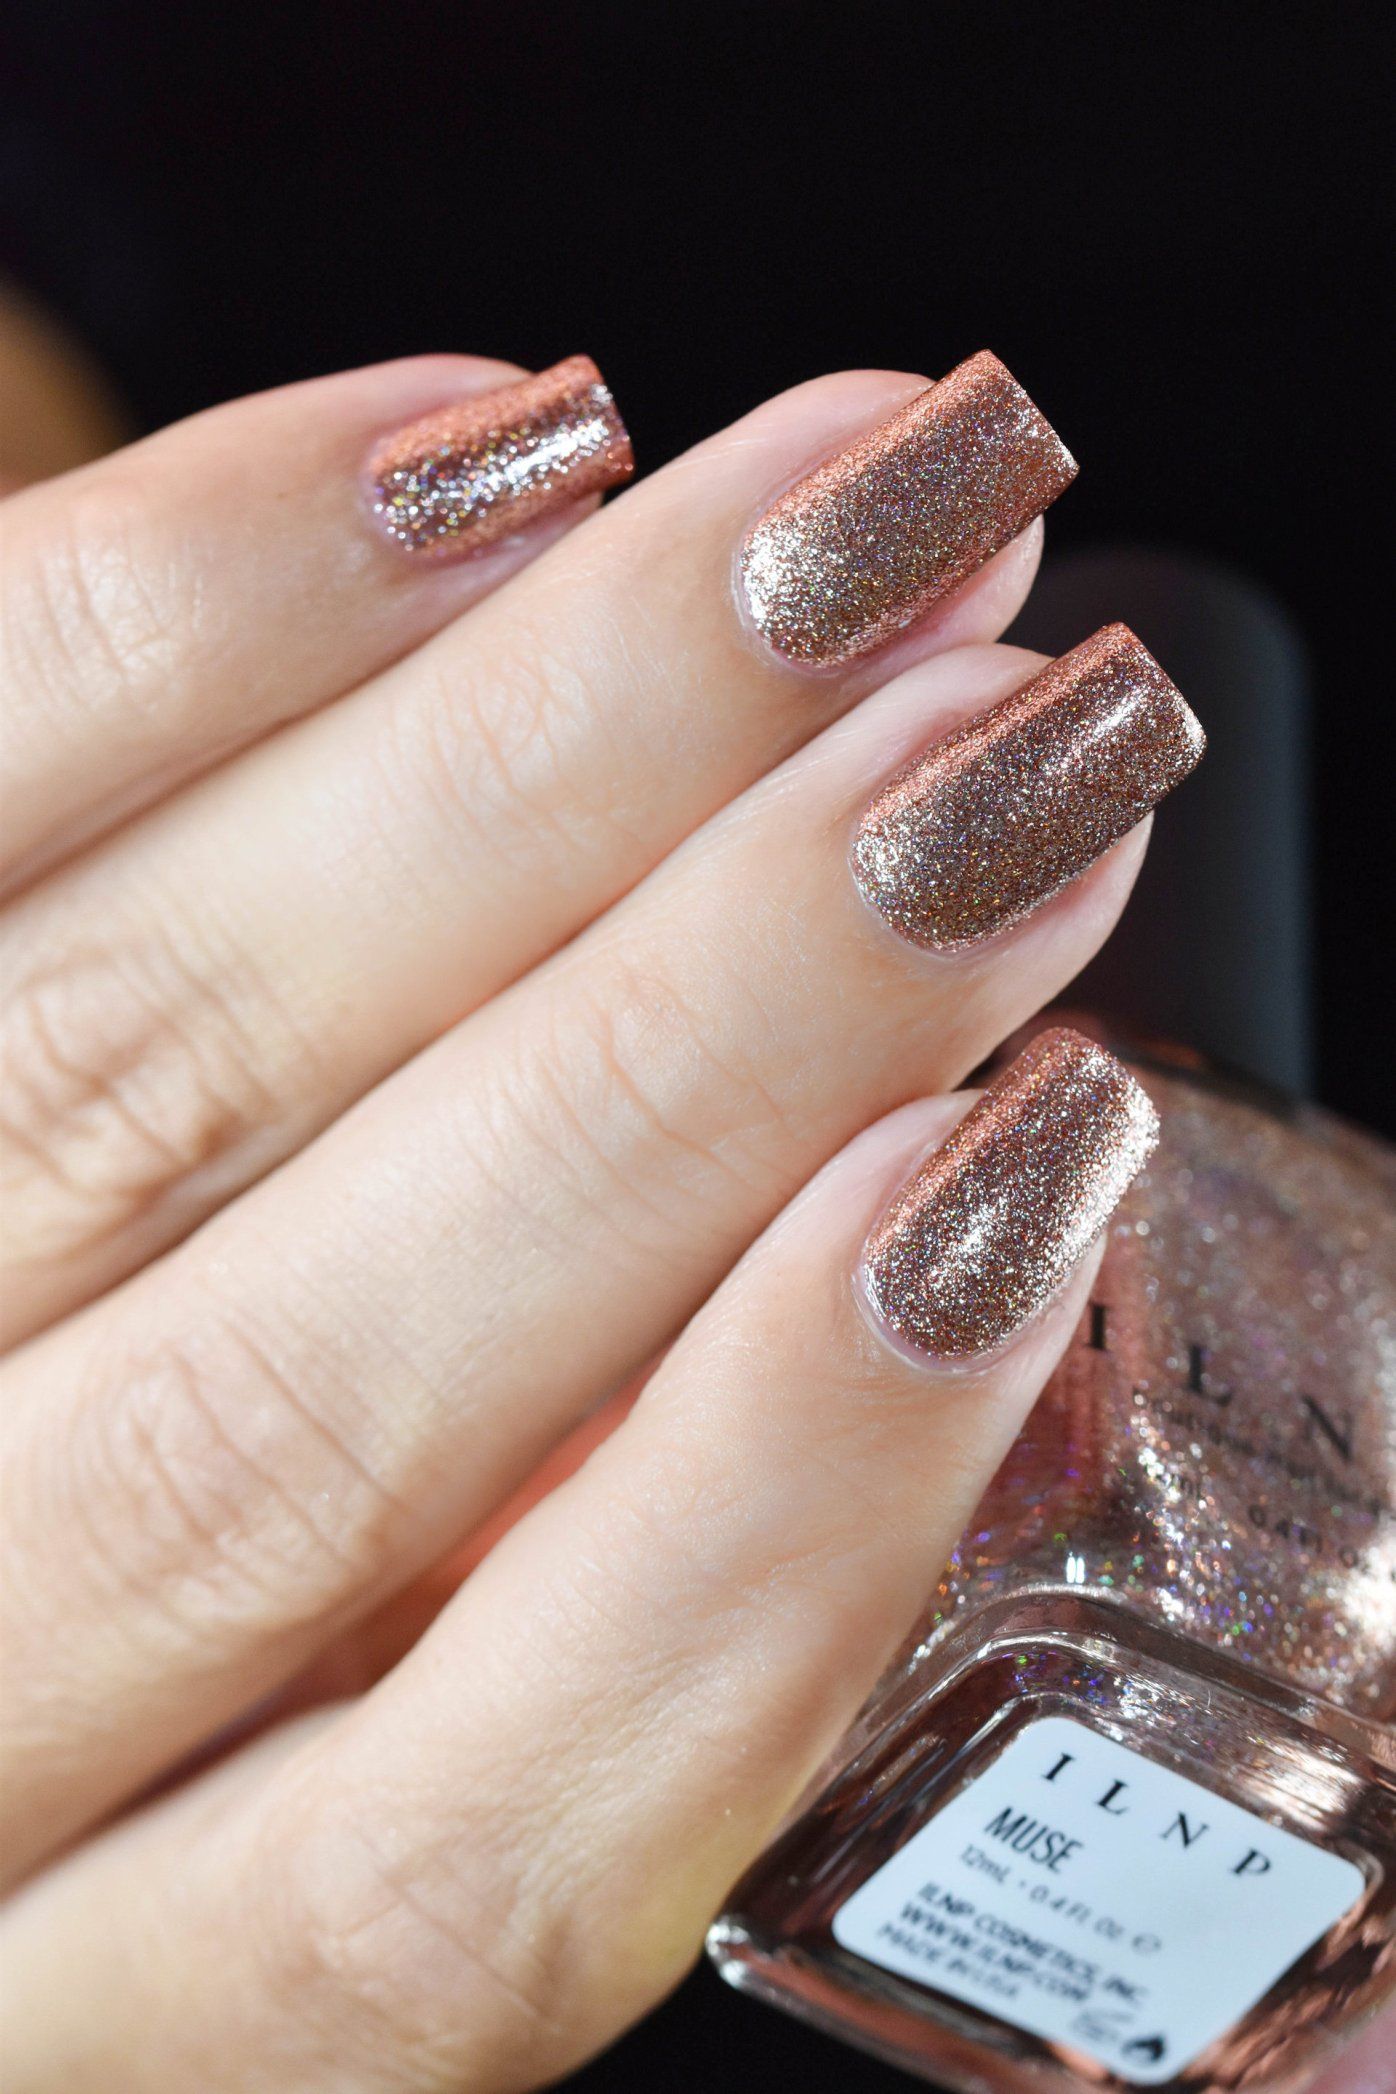 ILNP MUSE 2